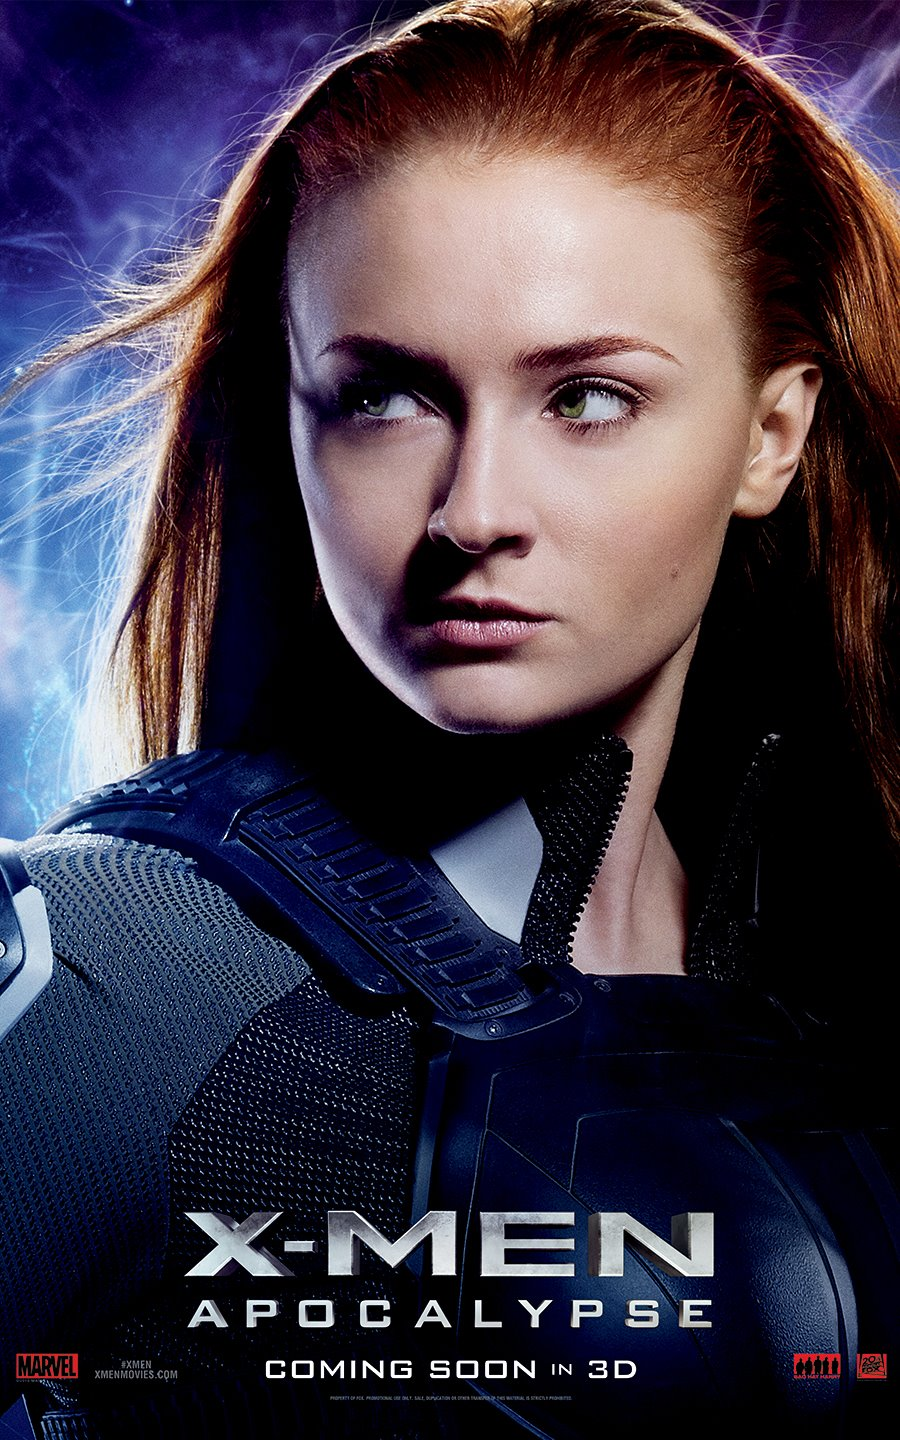 Jean Grey character poster